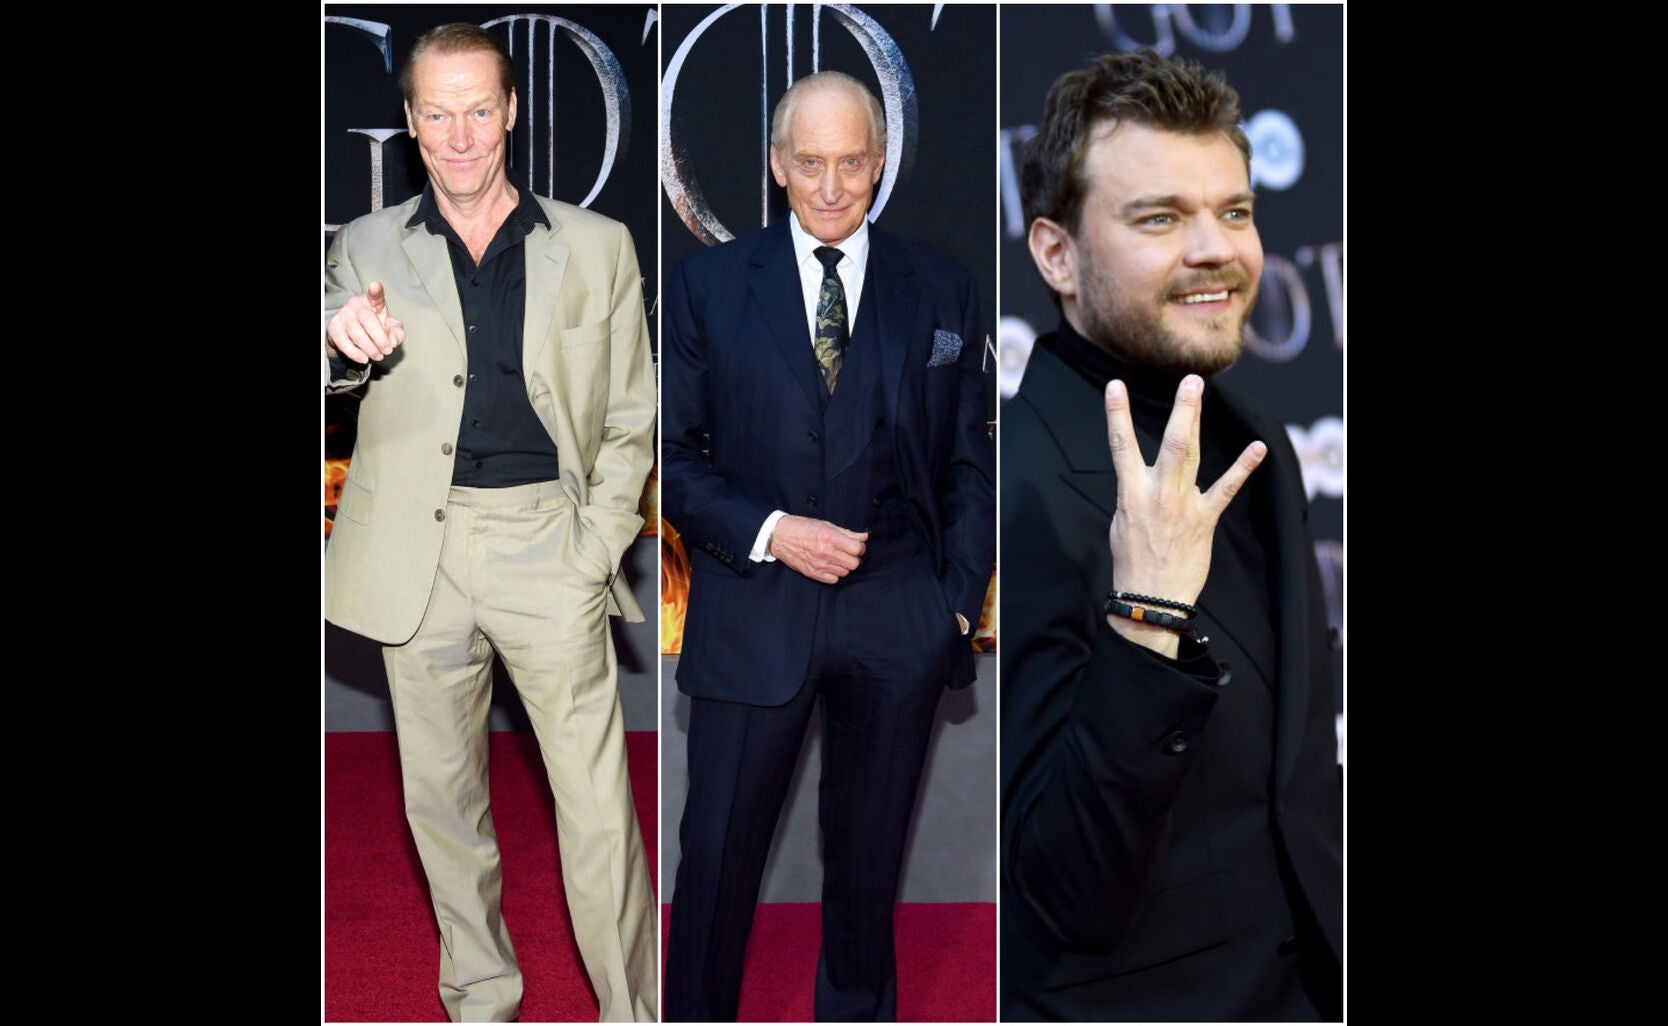 Iain Glen, Charles Dance, Pilou Asbæk at the premiere of s8 of Game of Thrones